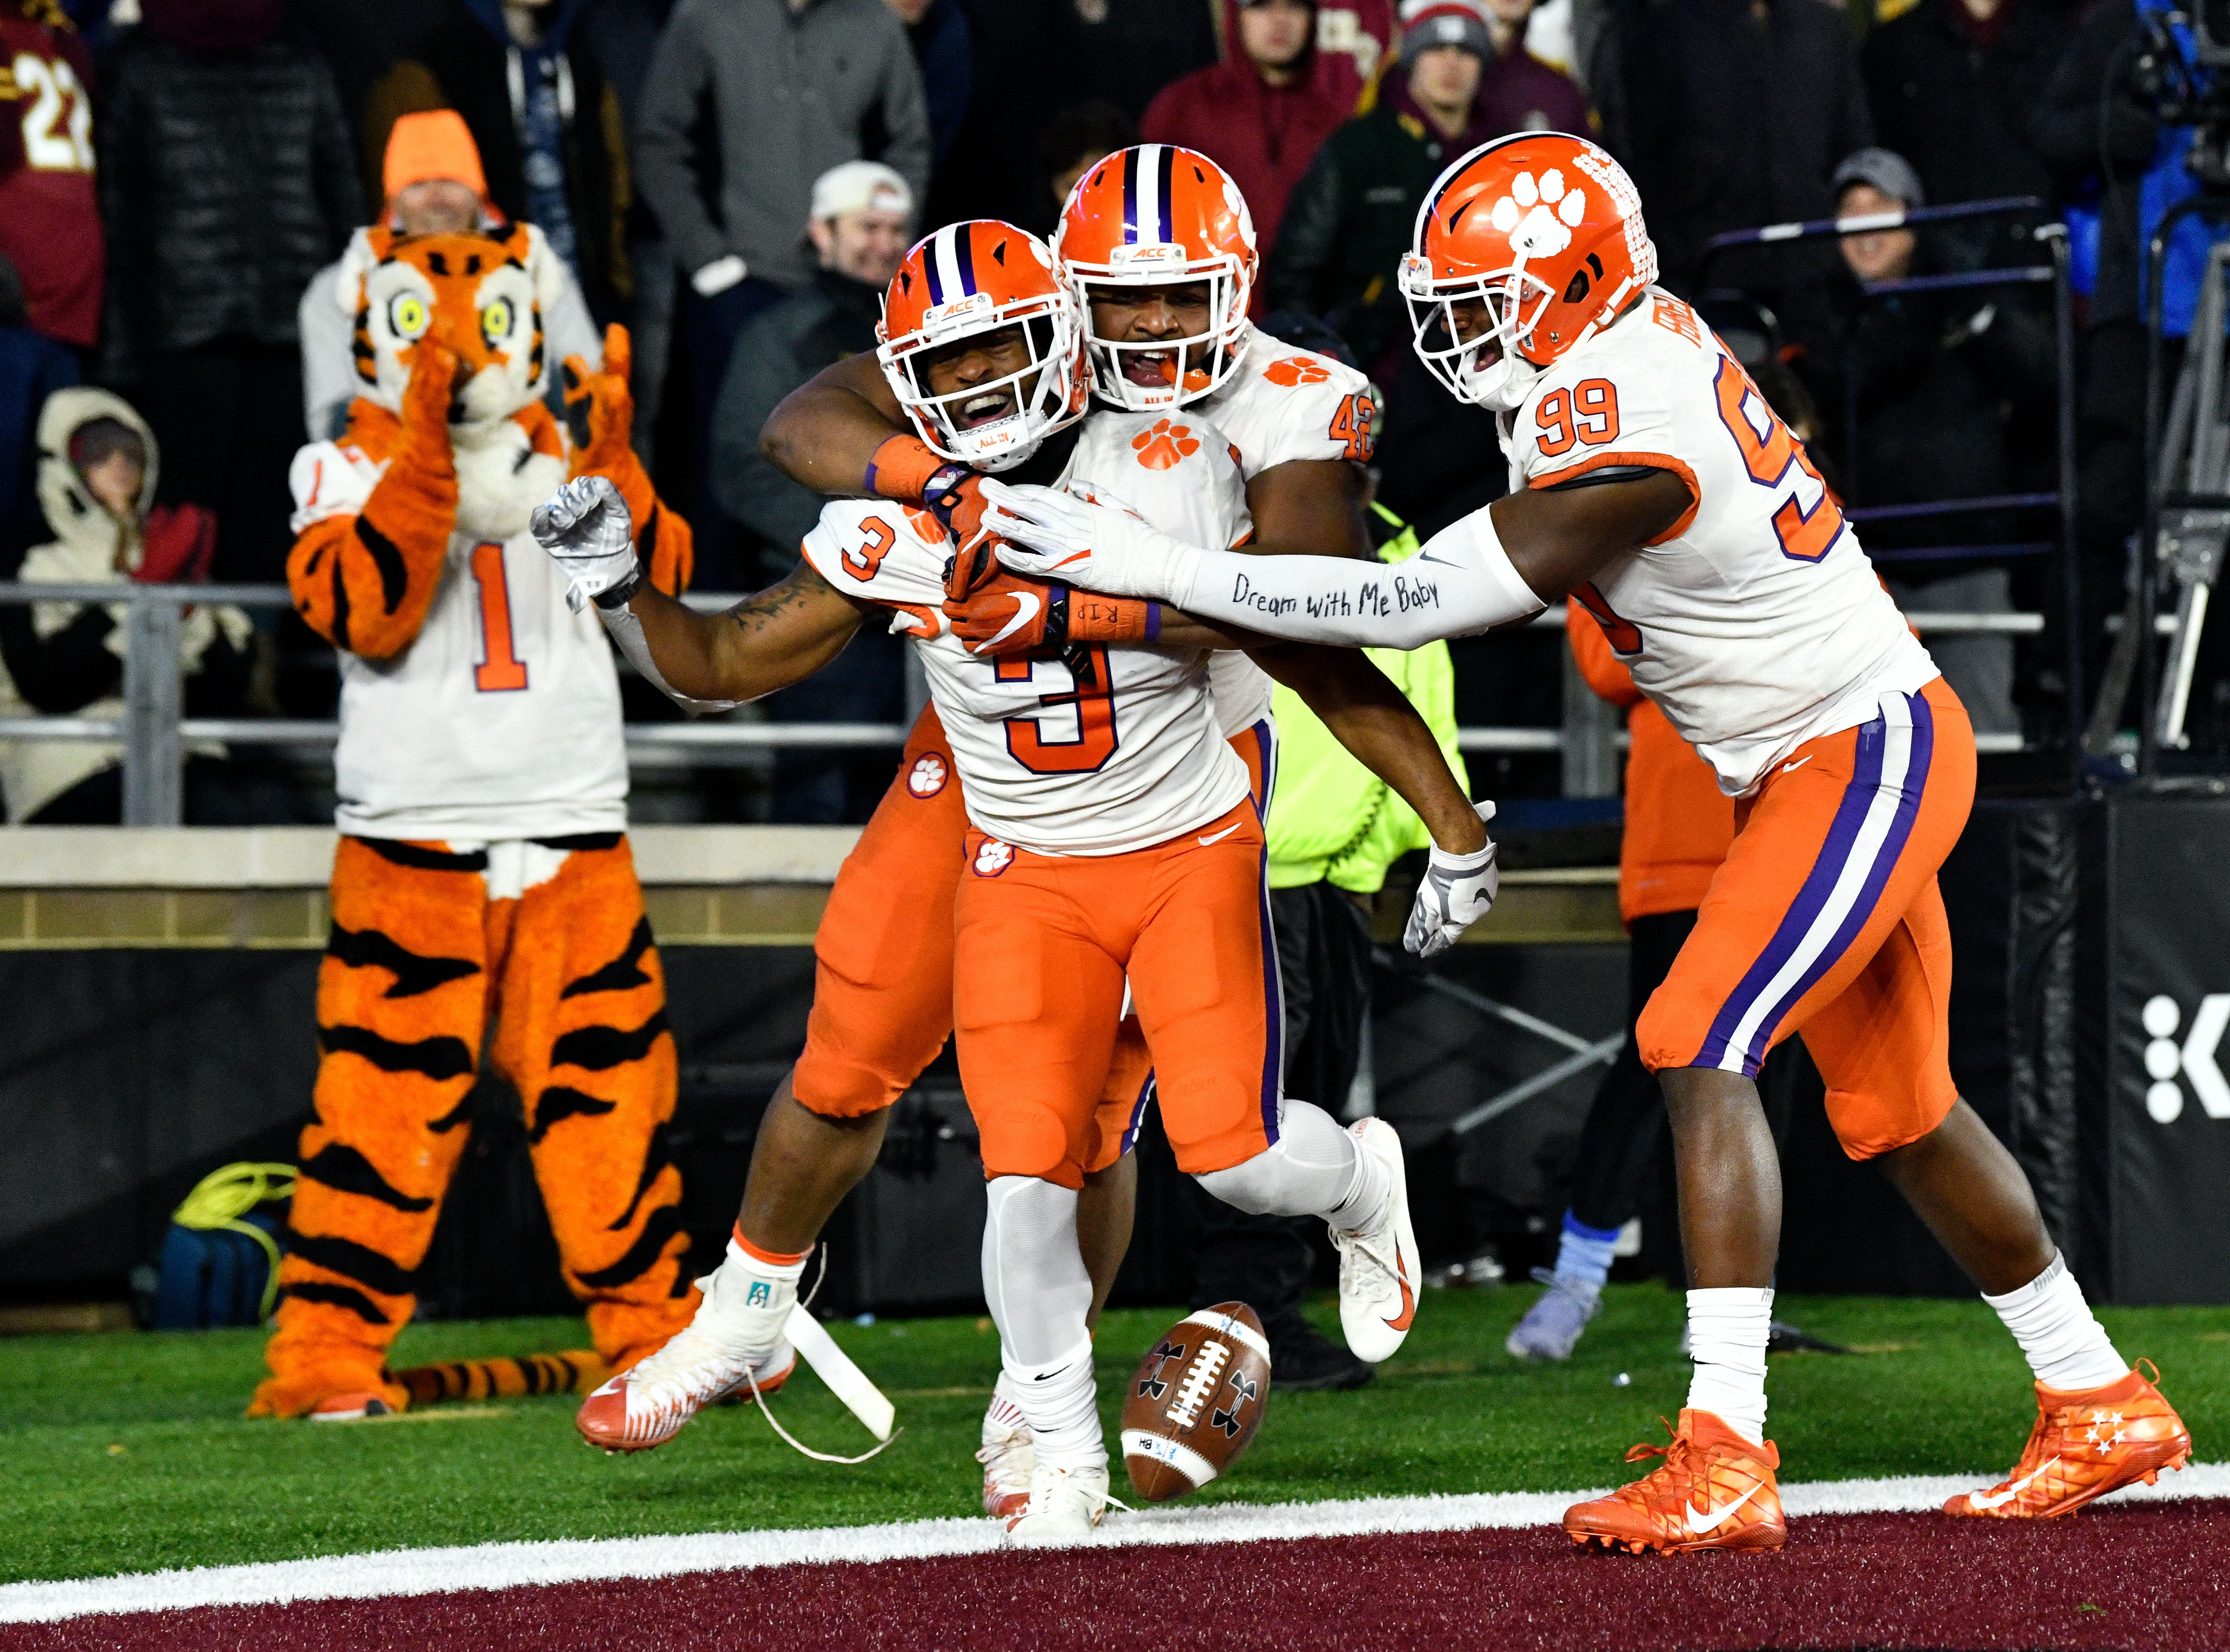 Clemson Tigers wide receiver Amari Rodgers (3) celebrates with his teammates after scoring a touchdown on a punt return against the Boston College Eagles during the second half at Alumni Stadium.